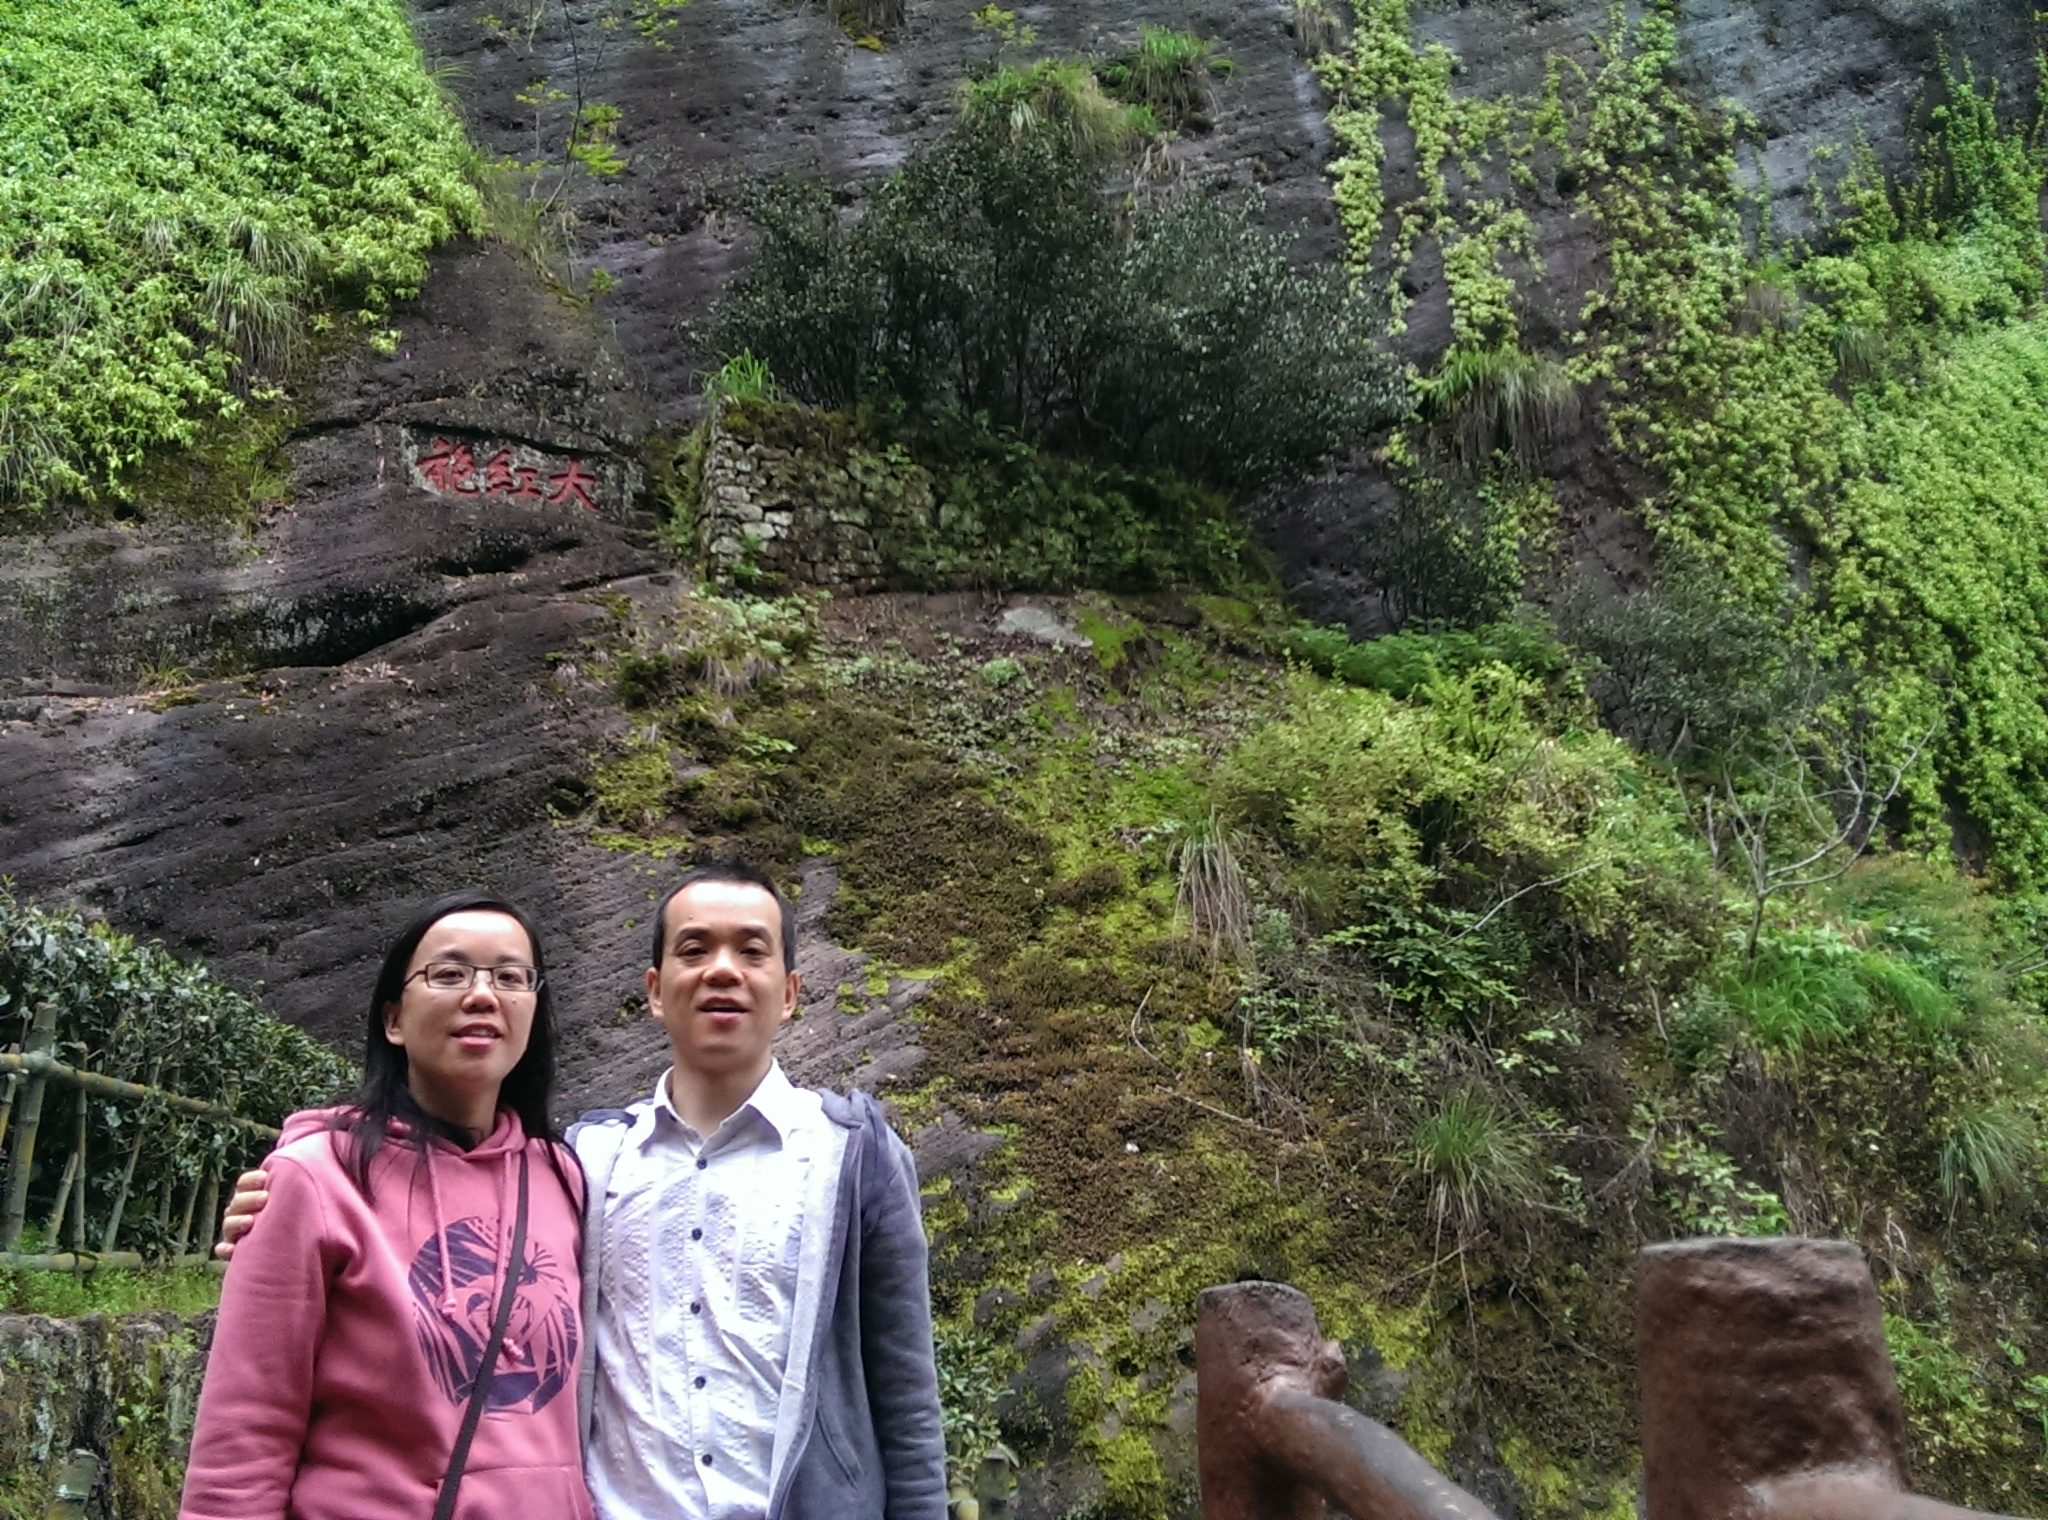 In front of the ancient Da Hong Pao tea bushes